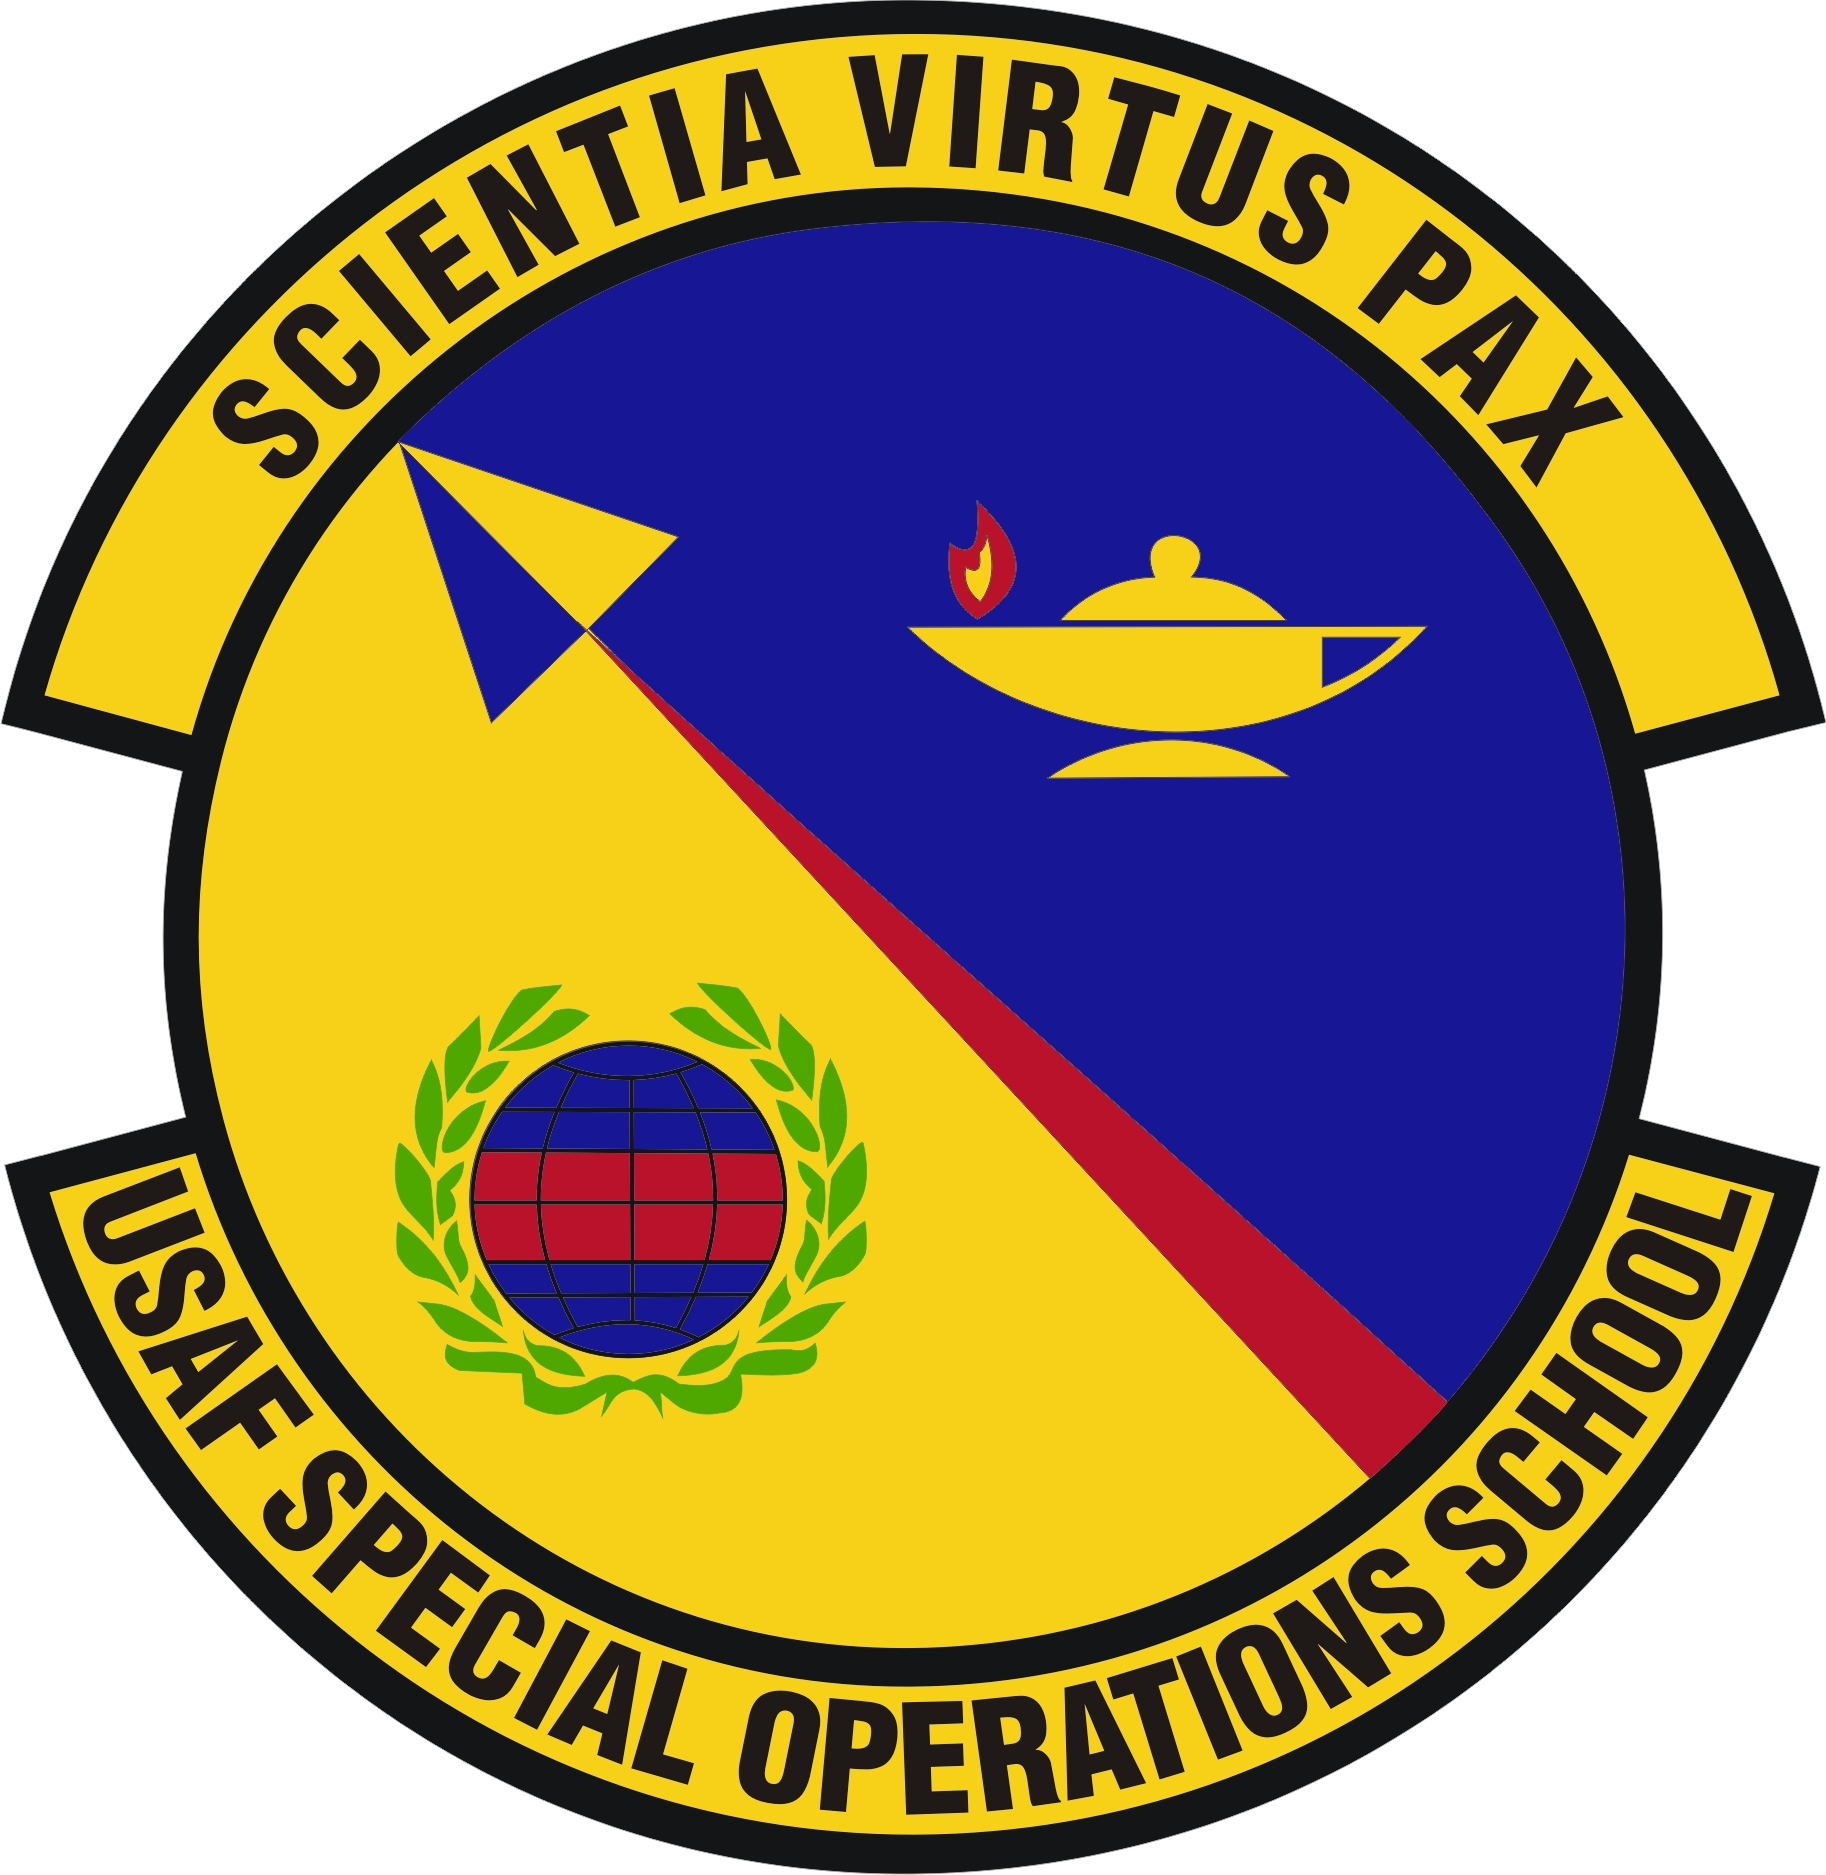 Us airforce special forces clipart png library library USAF Special Operations School (AFSOC) > Air Force ... png library library